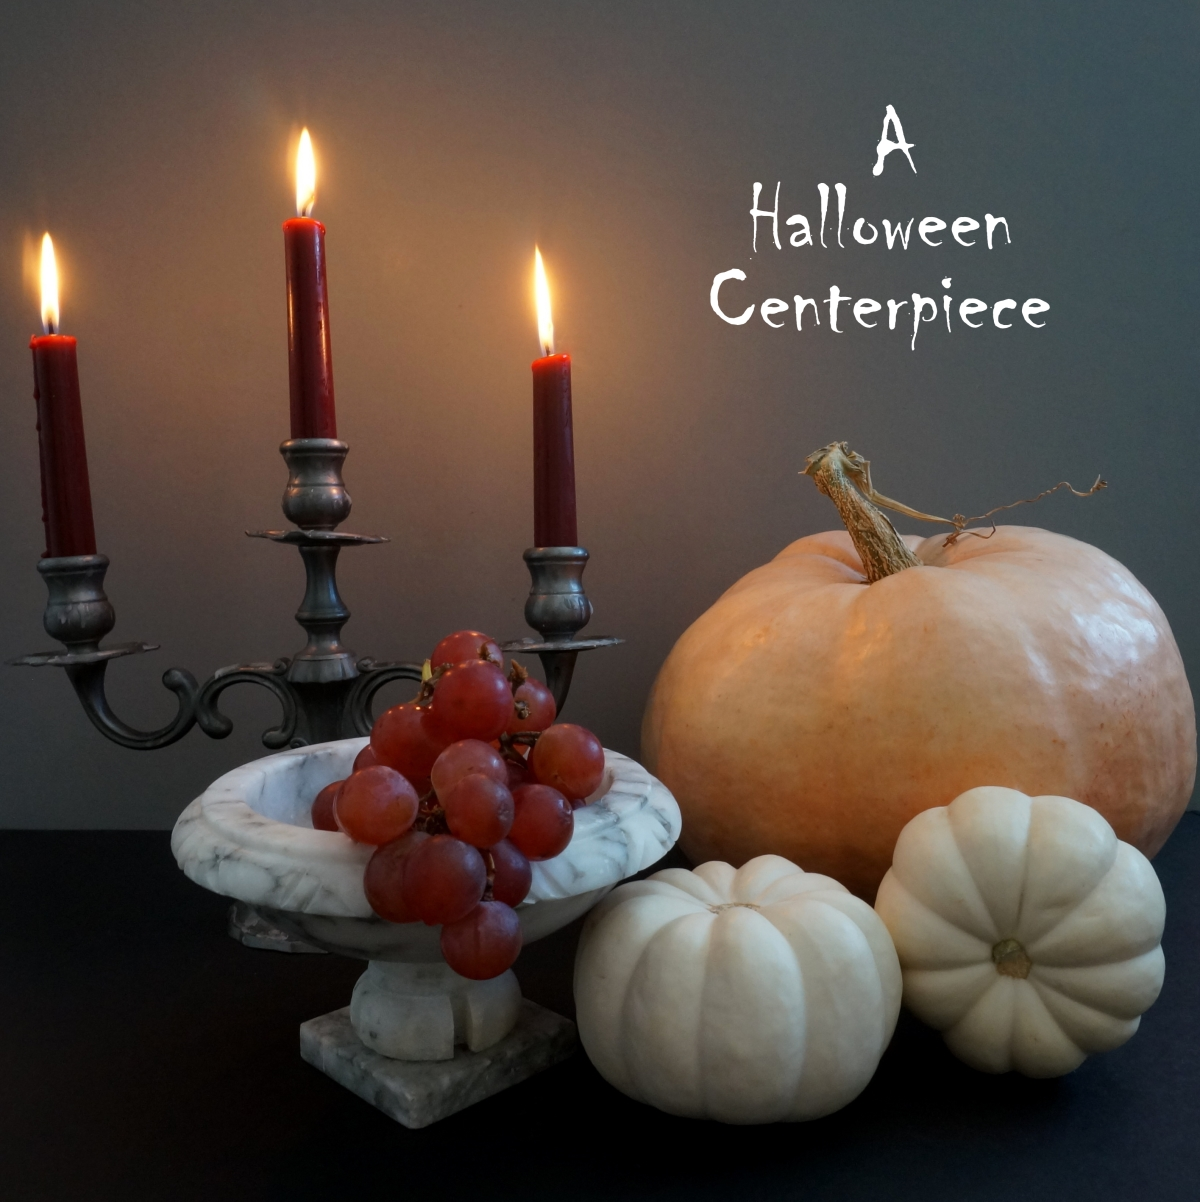 Halloween centerpiece idea